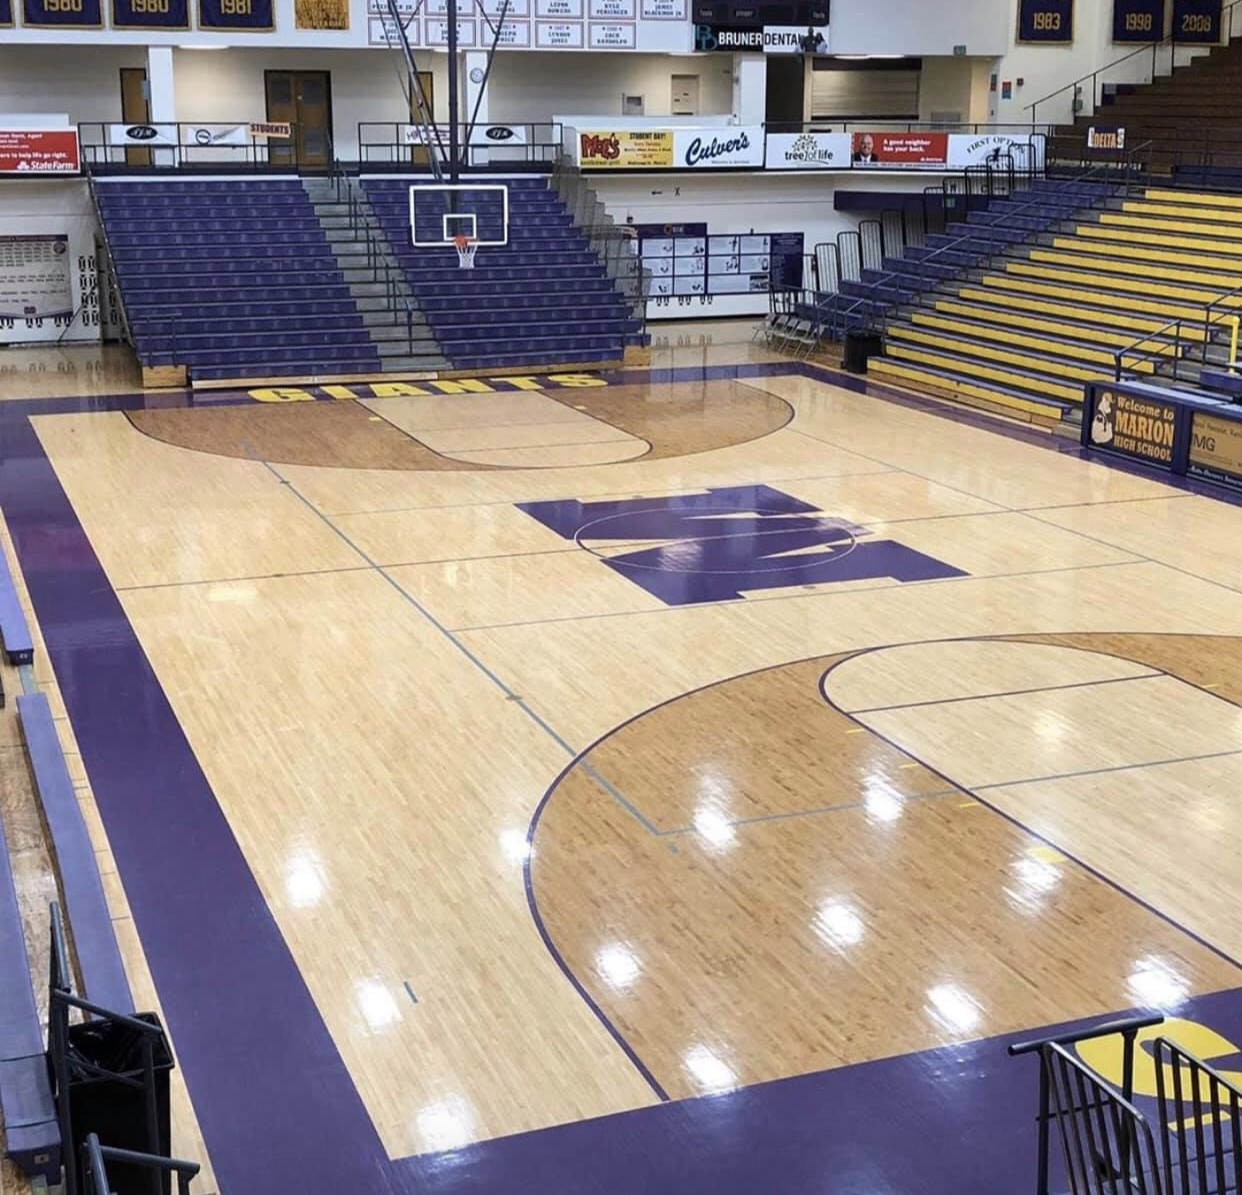 Marion Giant Boys Basketball Schedule 2019-2020